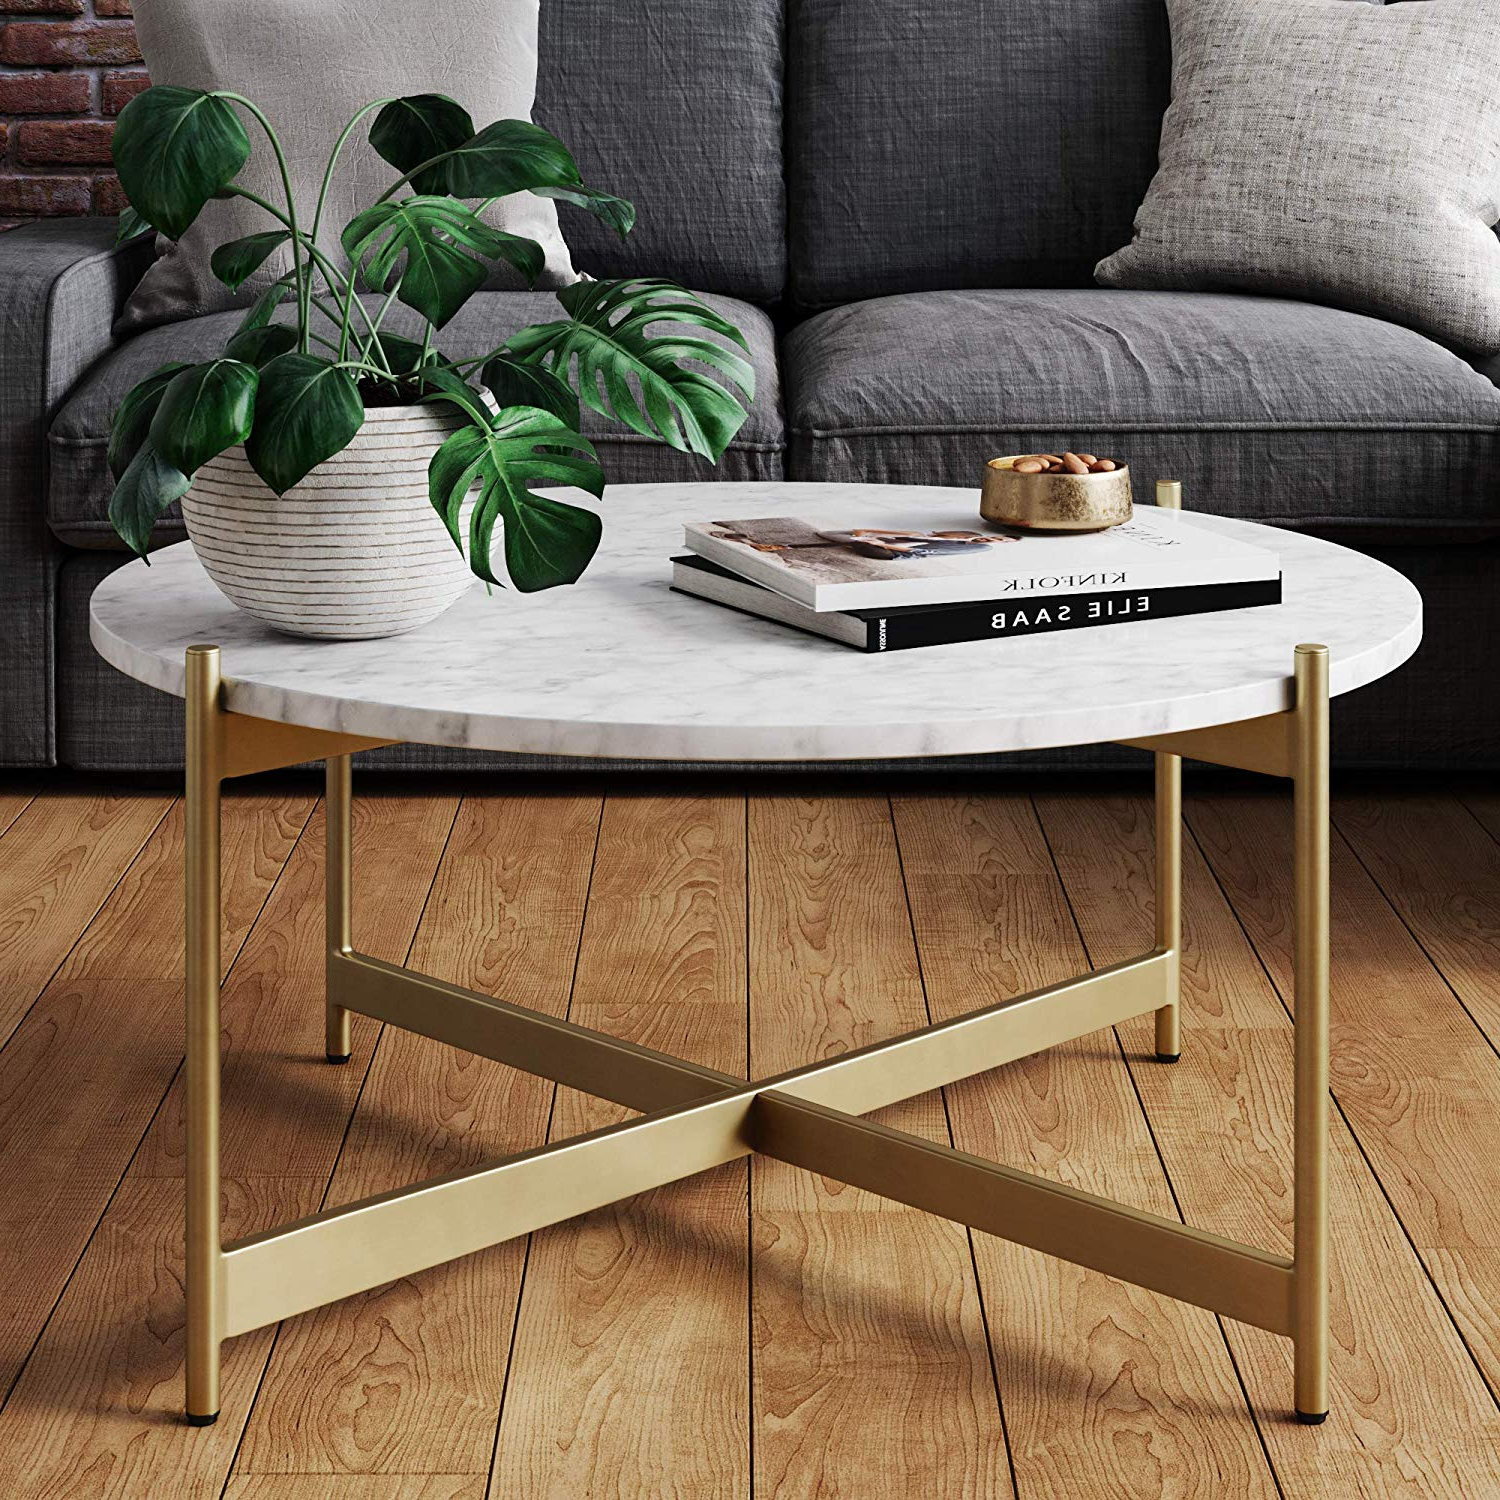 Most Recent Nathan James Piper Faux Marble Round Modern Living Room Coffee Table With  Brass Metal Frame, Gold Intended For Faux Marble Finish Metal Contemporary Dining Tables (View 18 of 25)